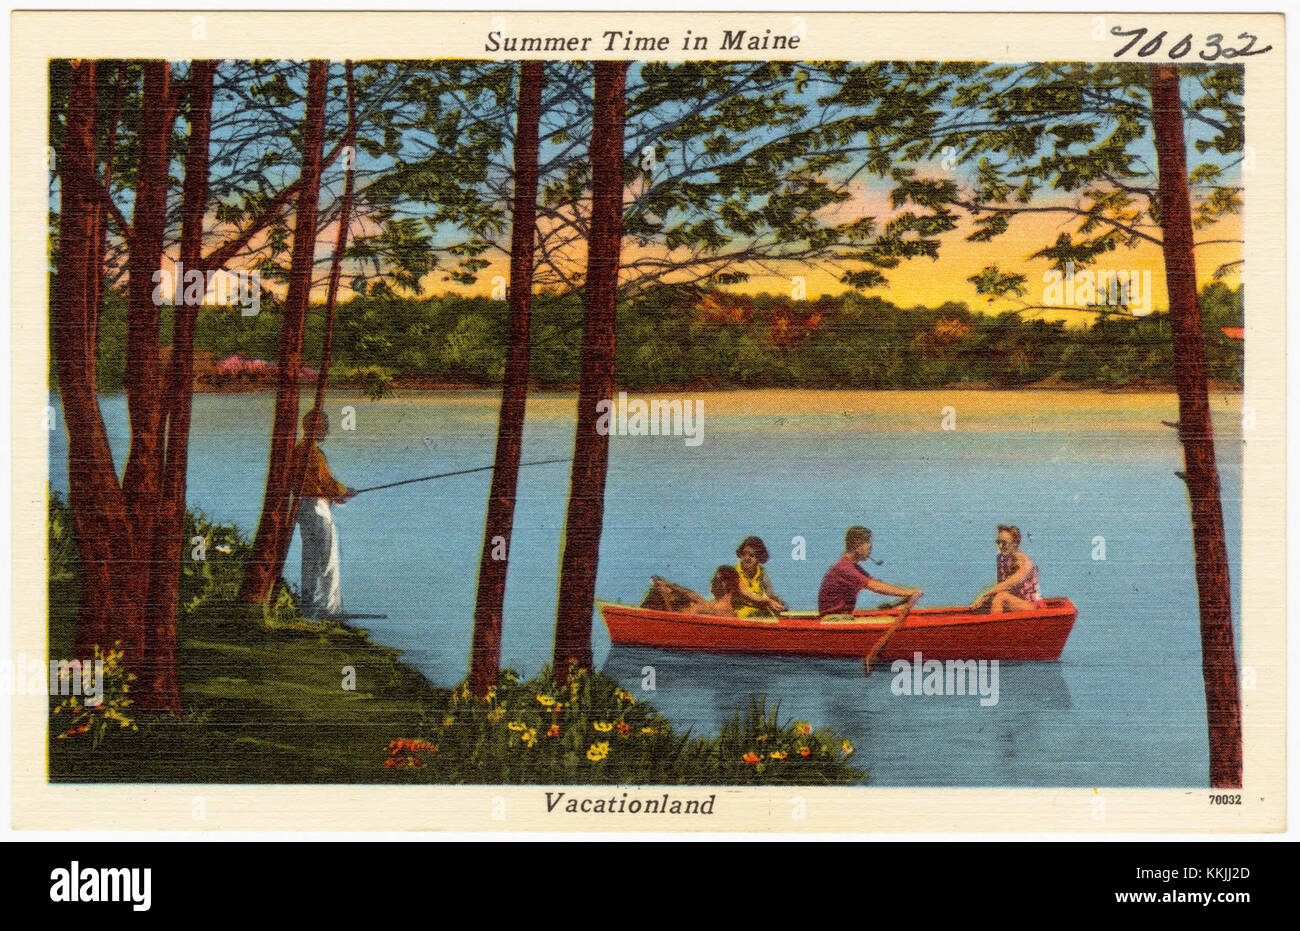 Summer time in Maine, Vacationland (70032) - Stock Image